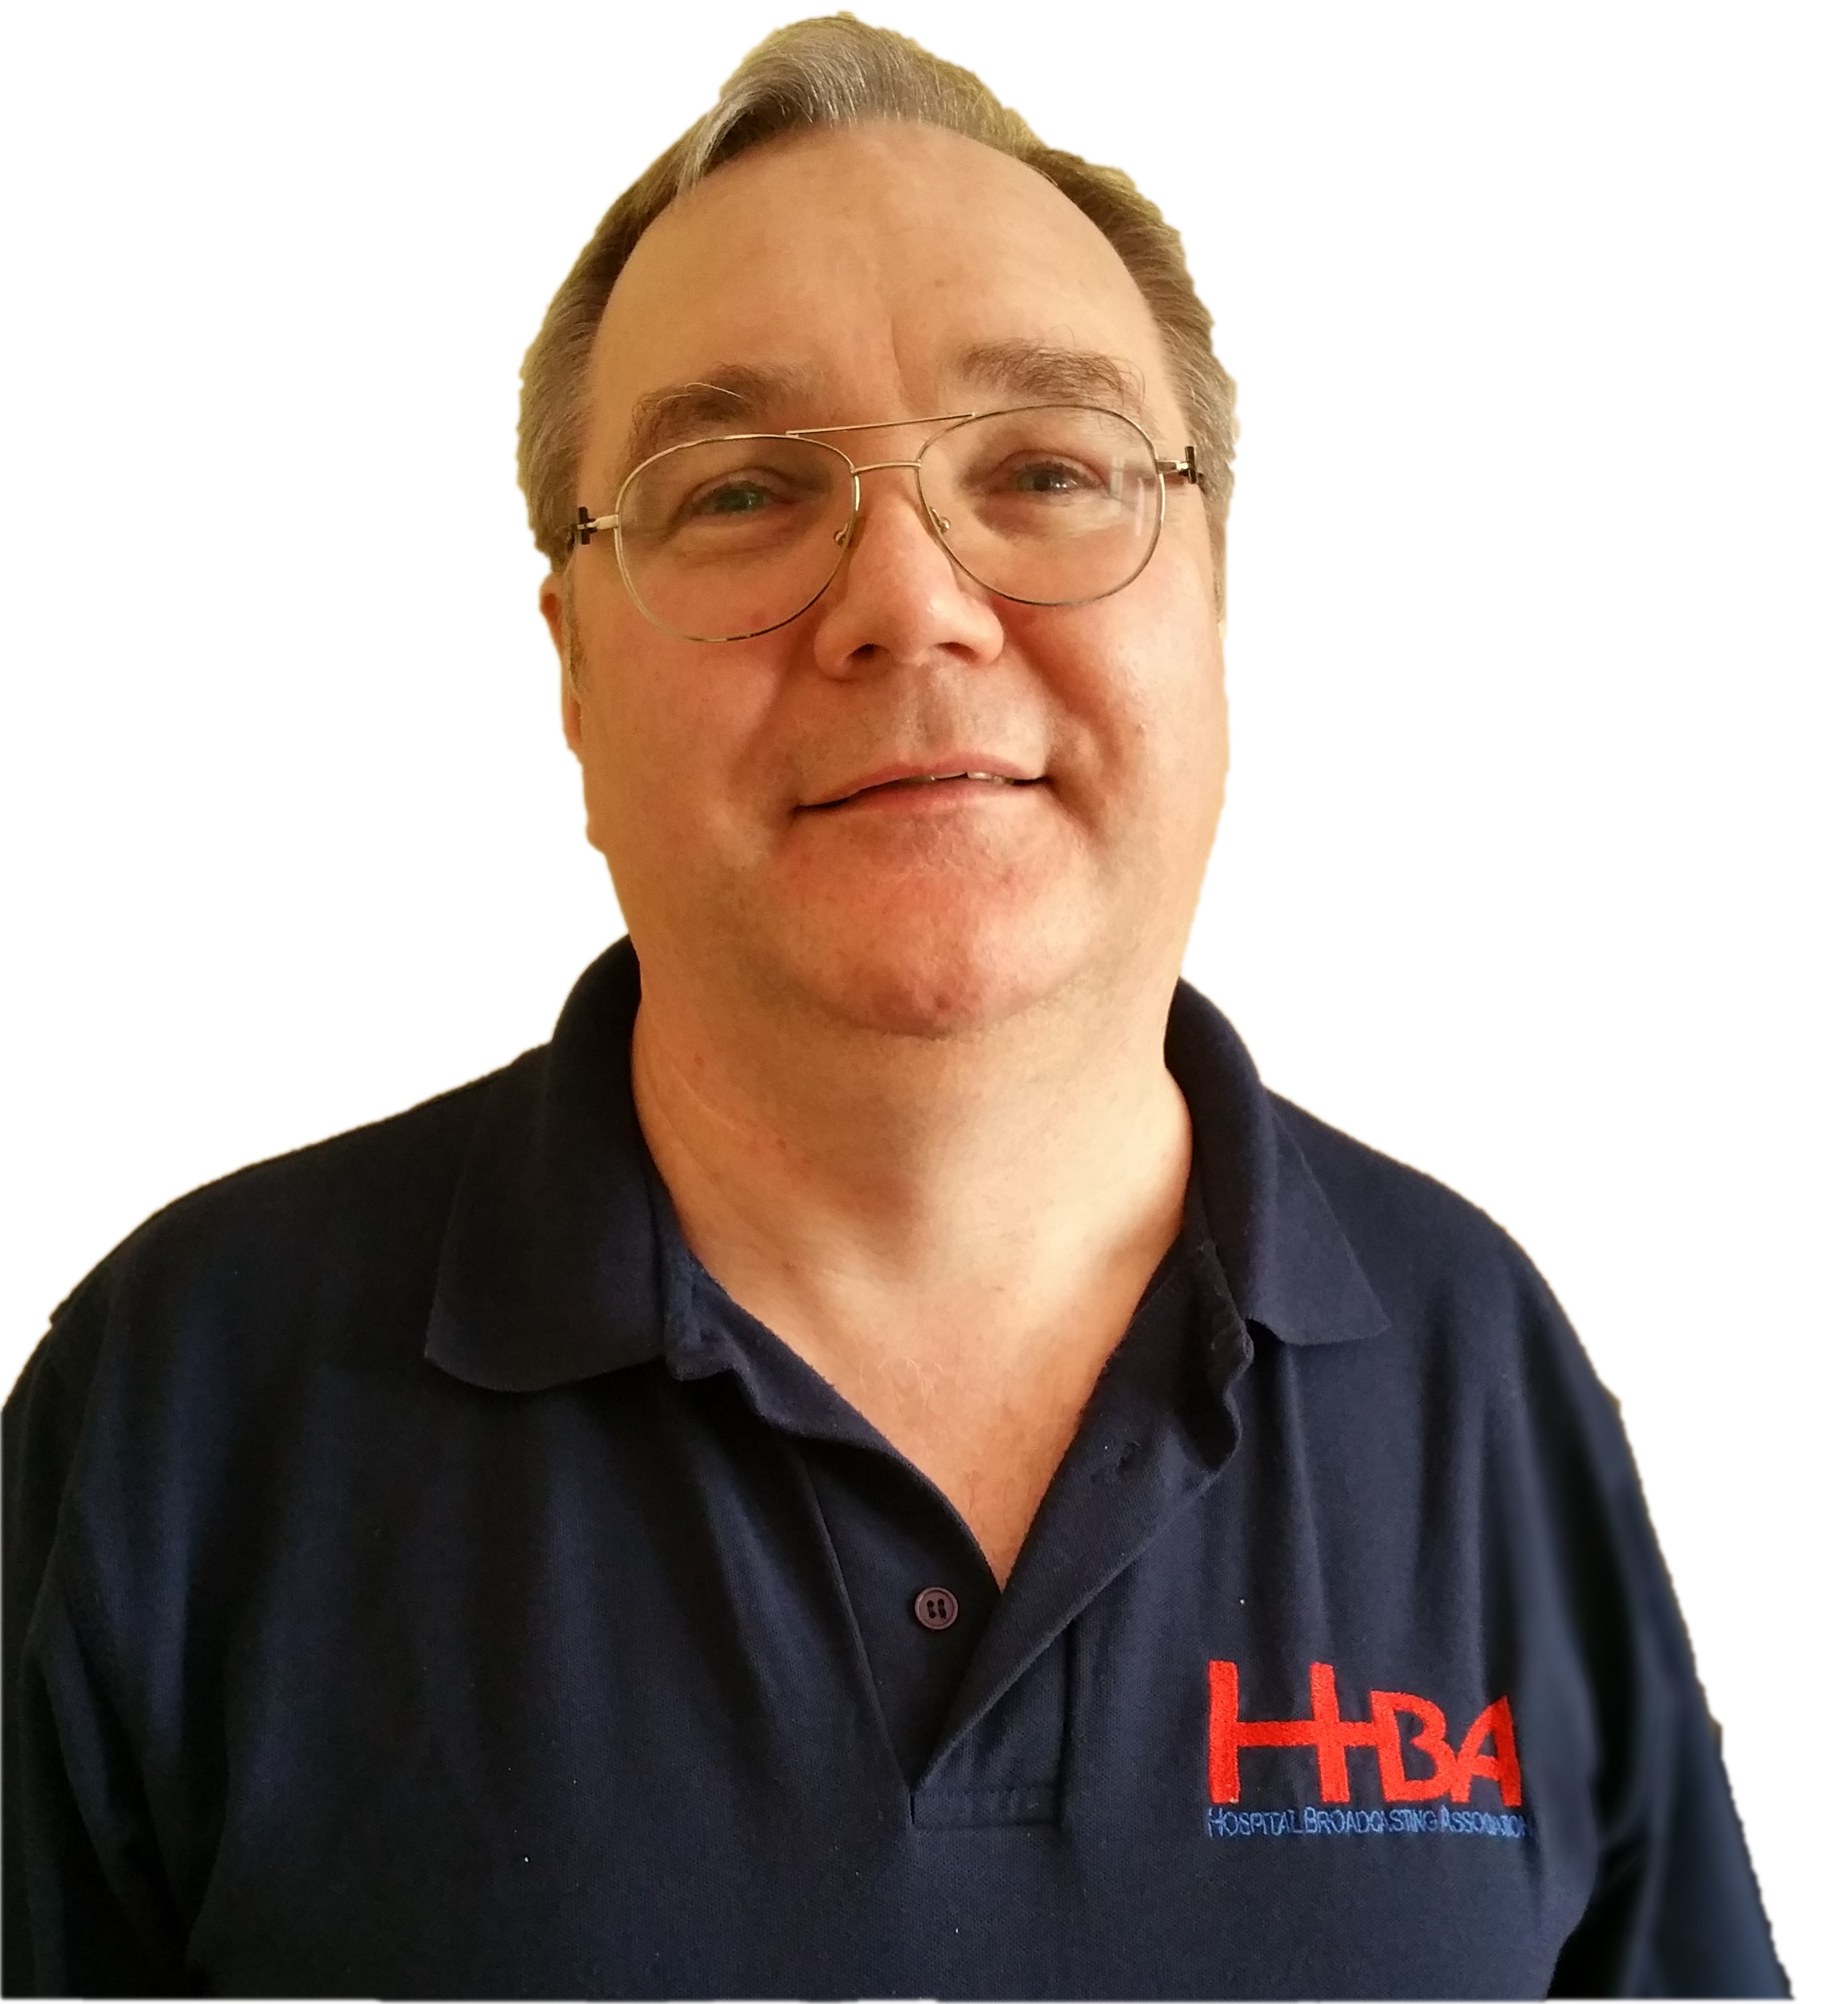 Nigel Dallard - HBA Secretary